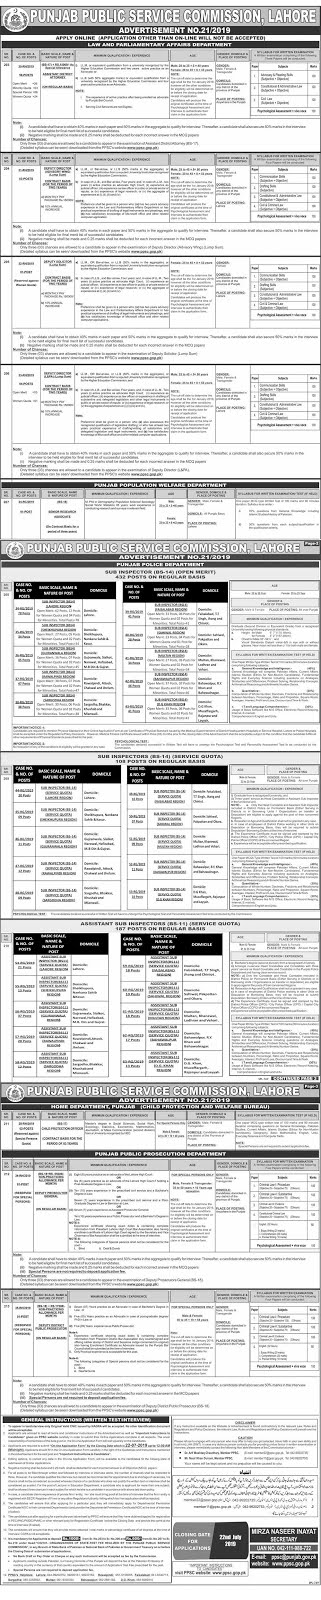 800+Vacancy PPSC Advertisement No 21/2019 July Jobs 2019